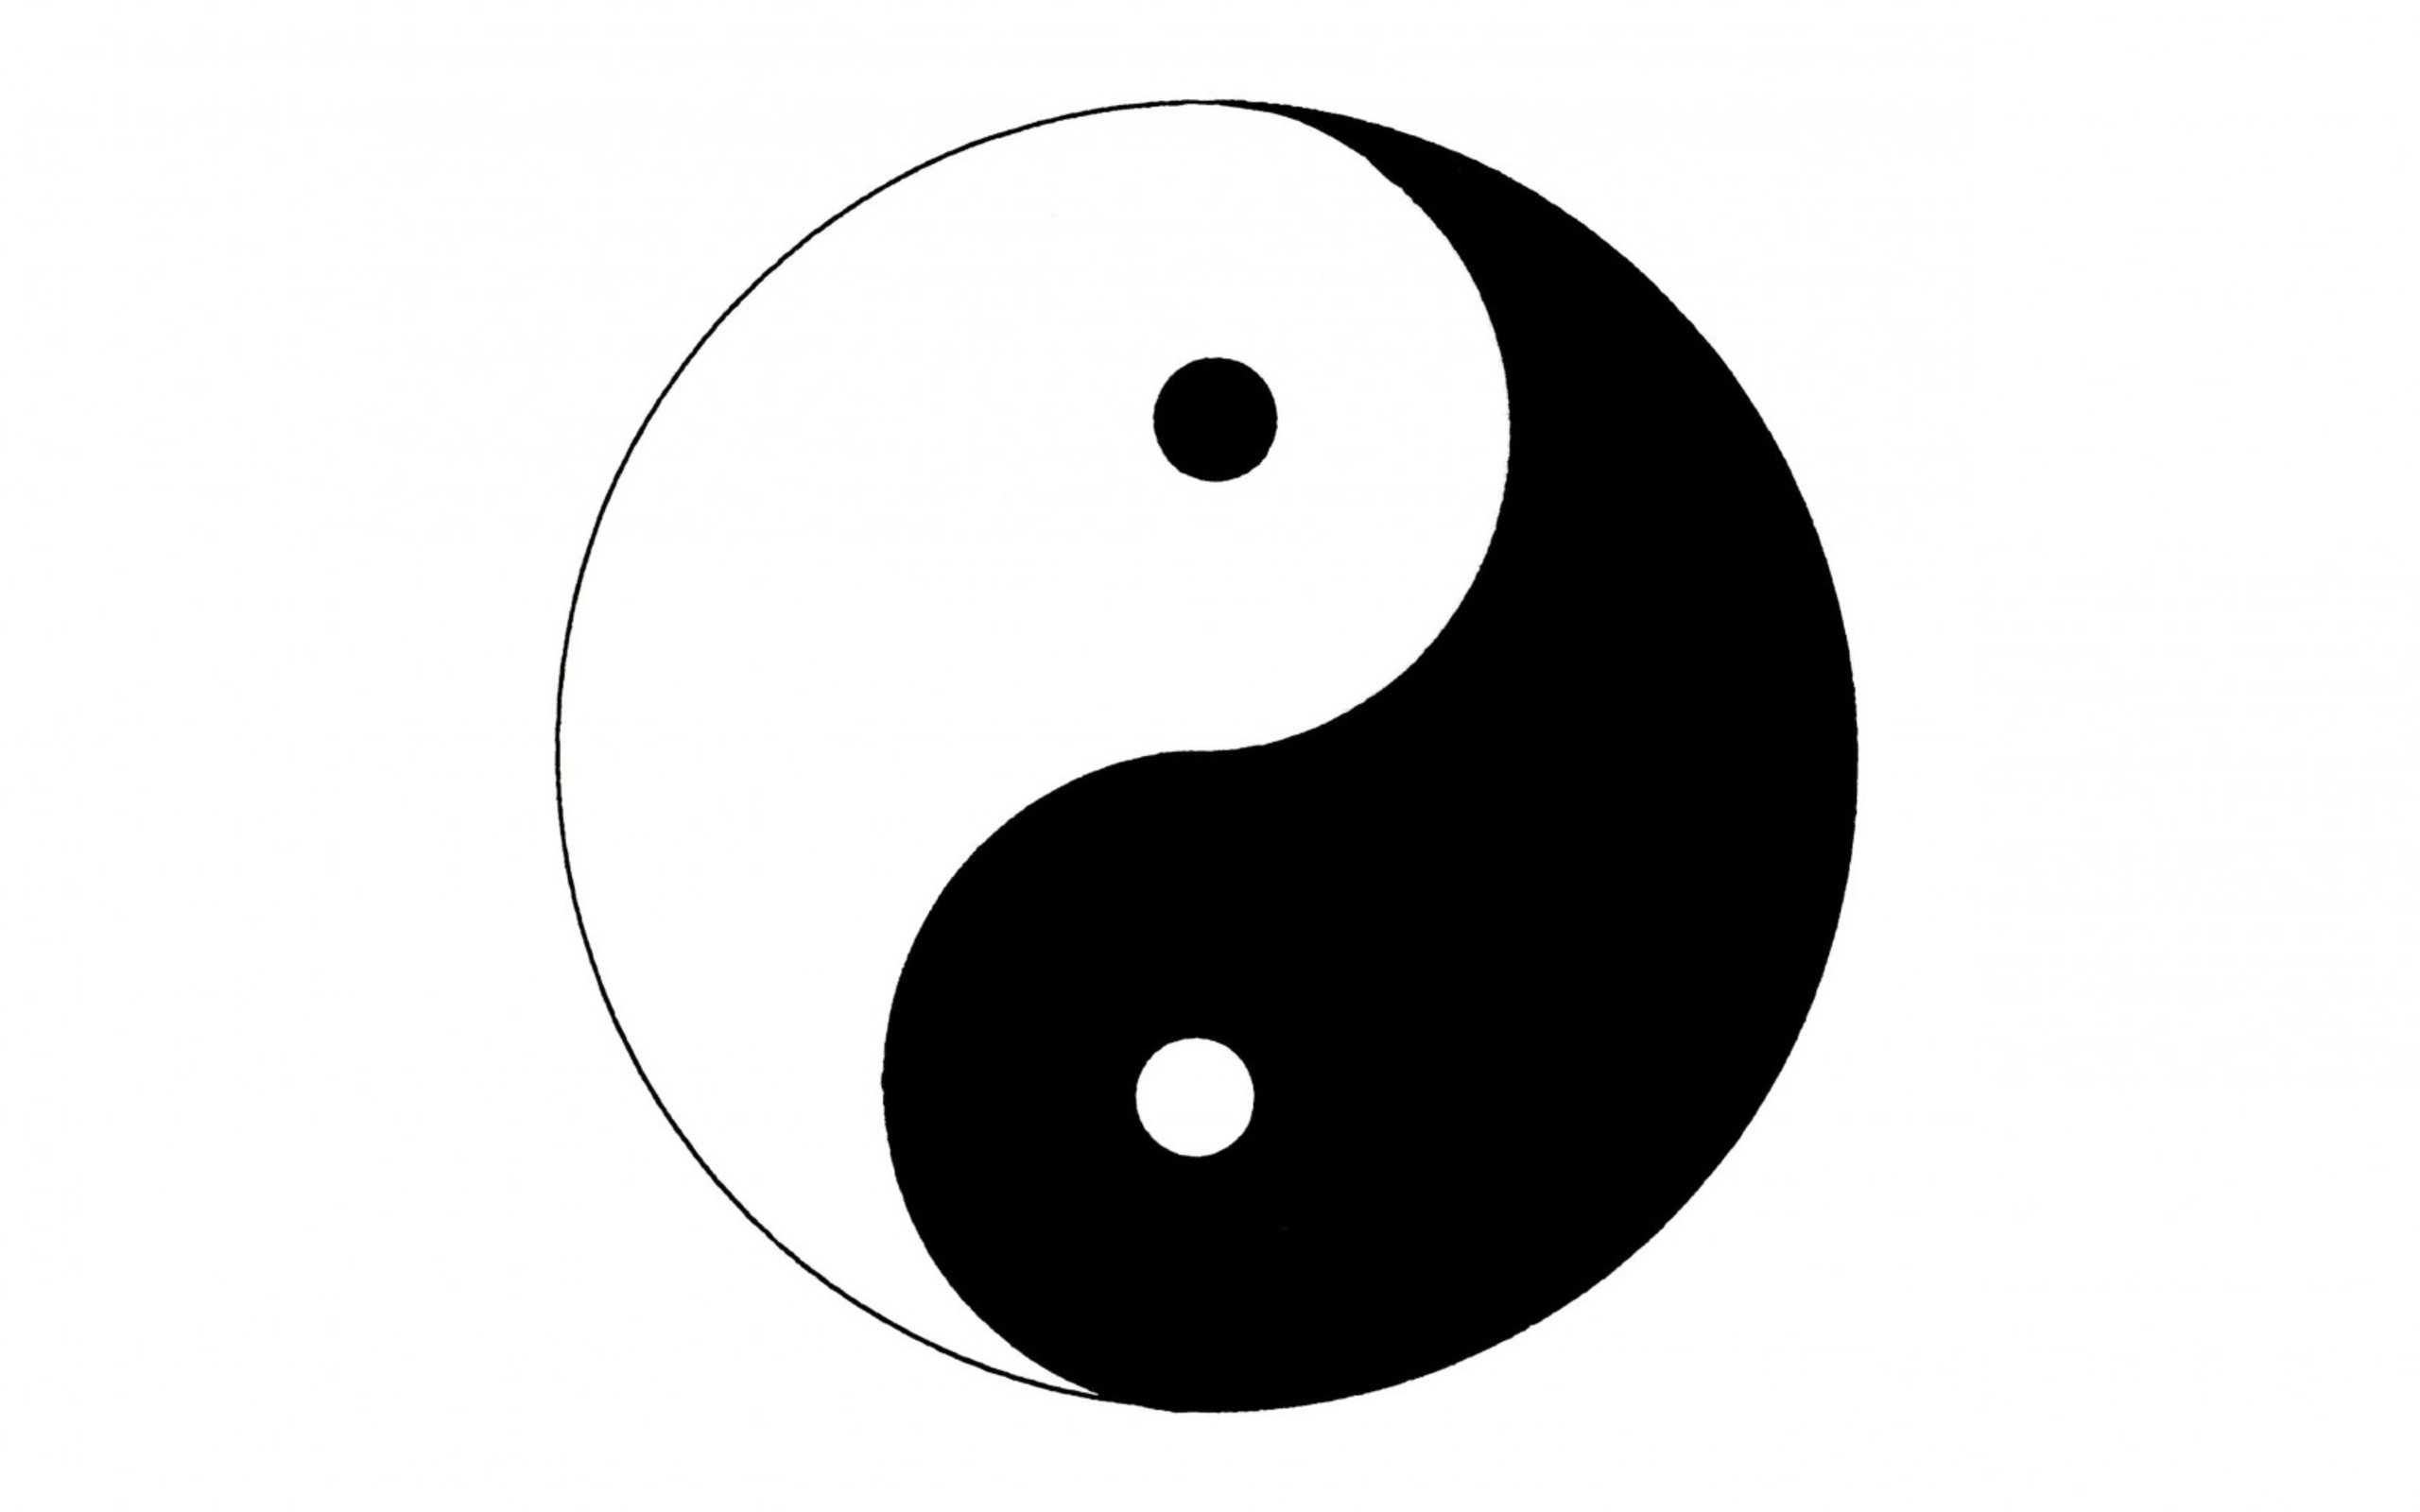 ying yang wallpapers55com   Best Wallpapers for PCs Laptops 2560x1600